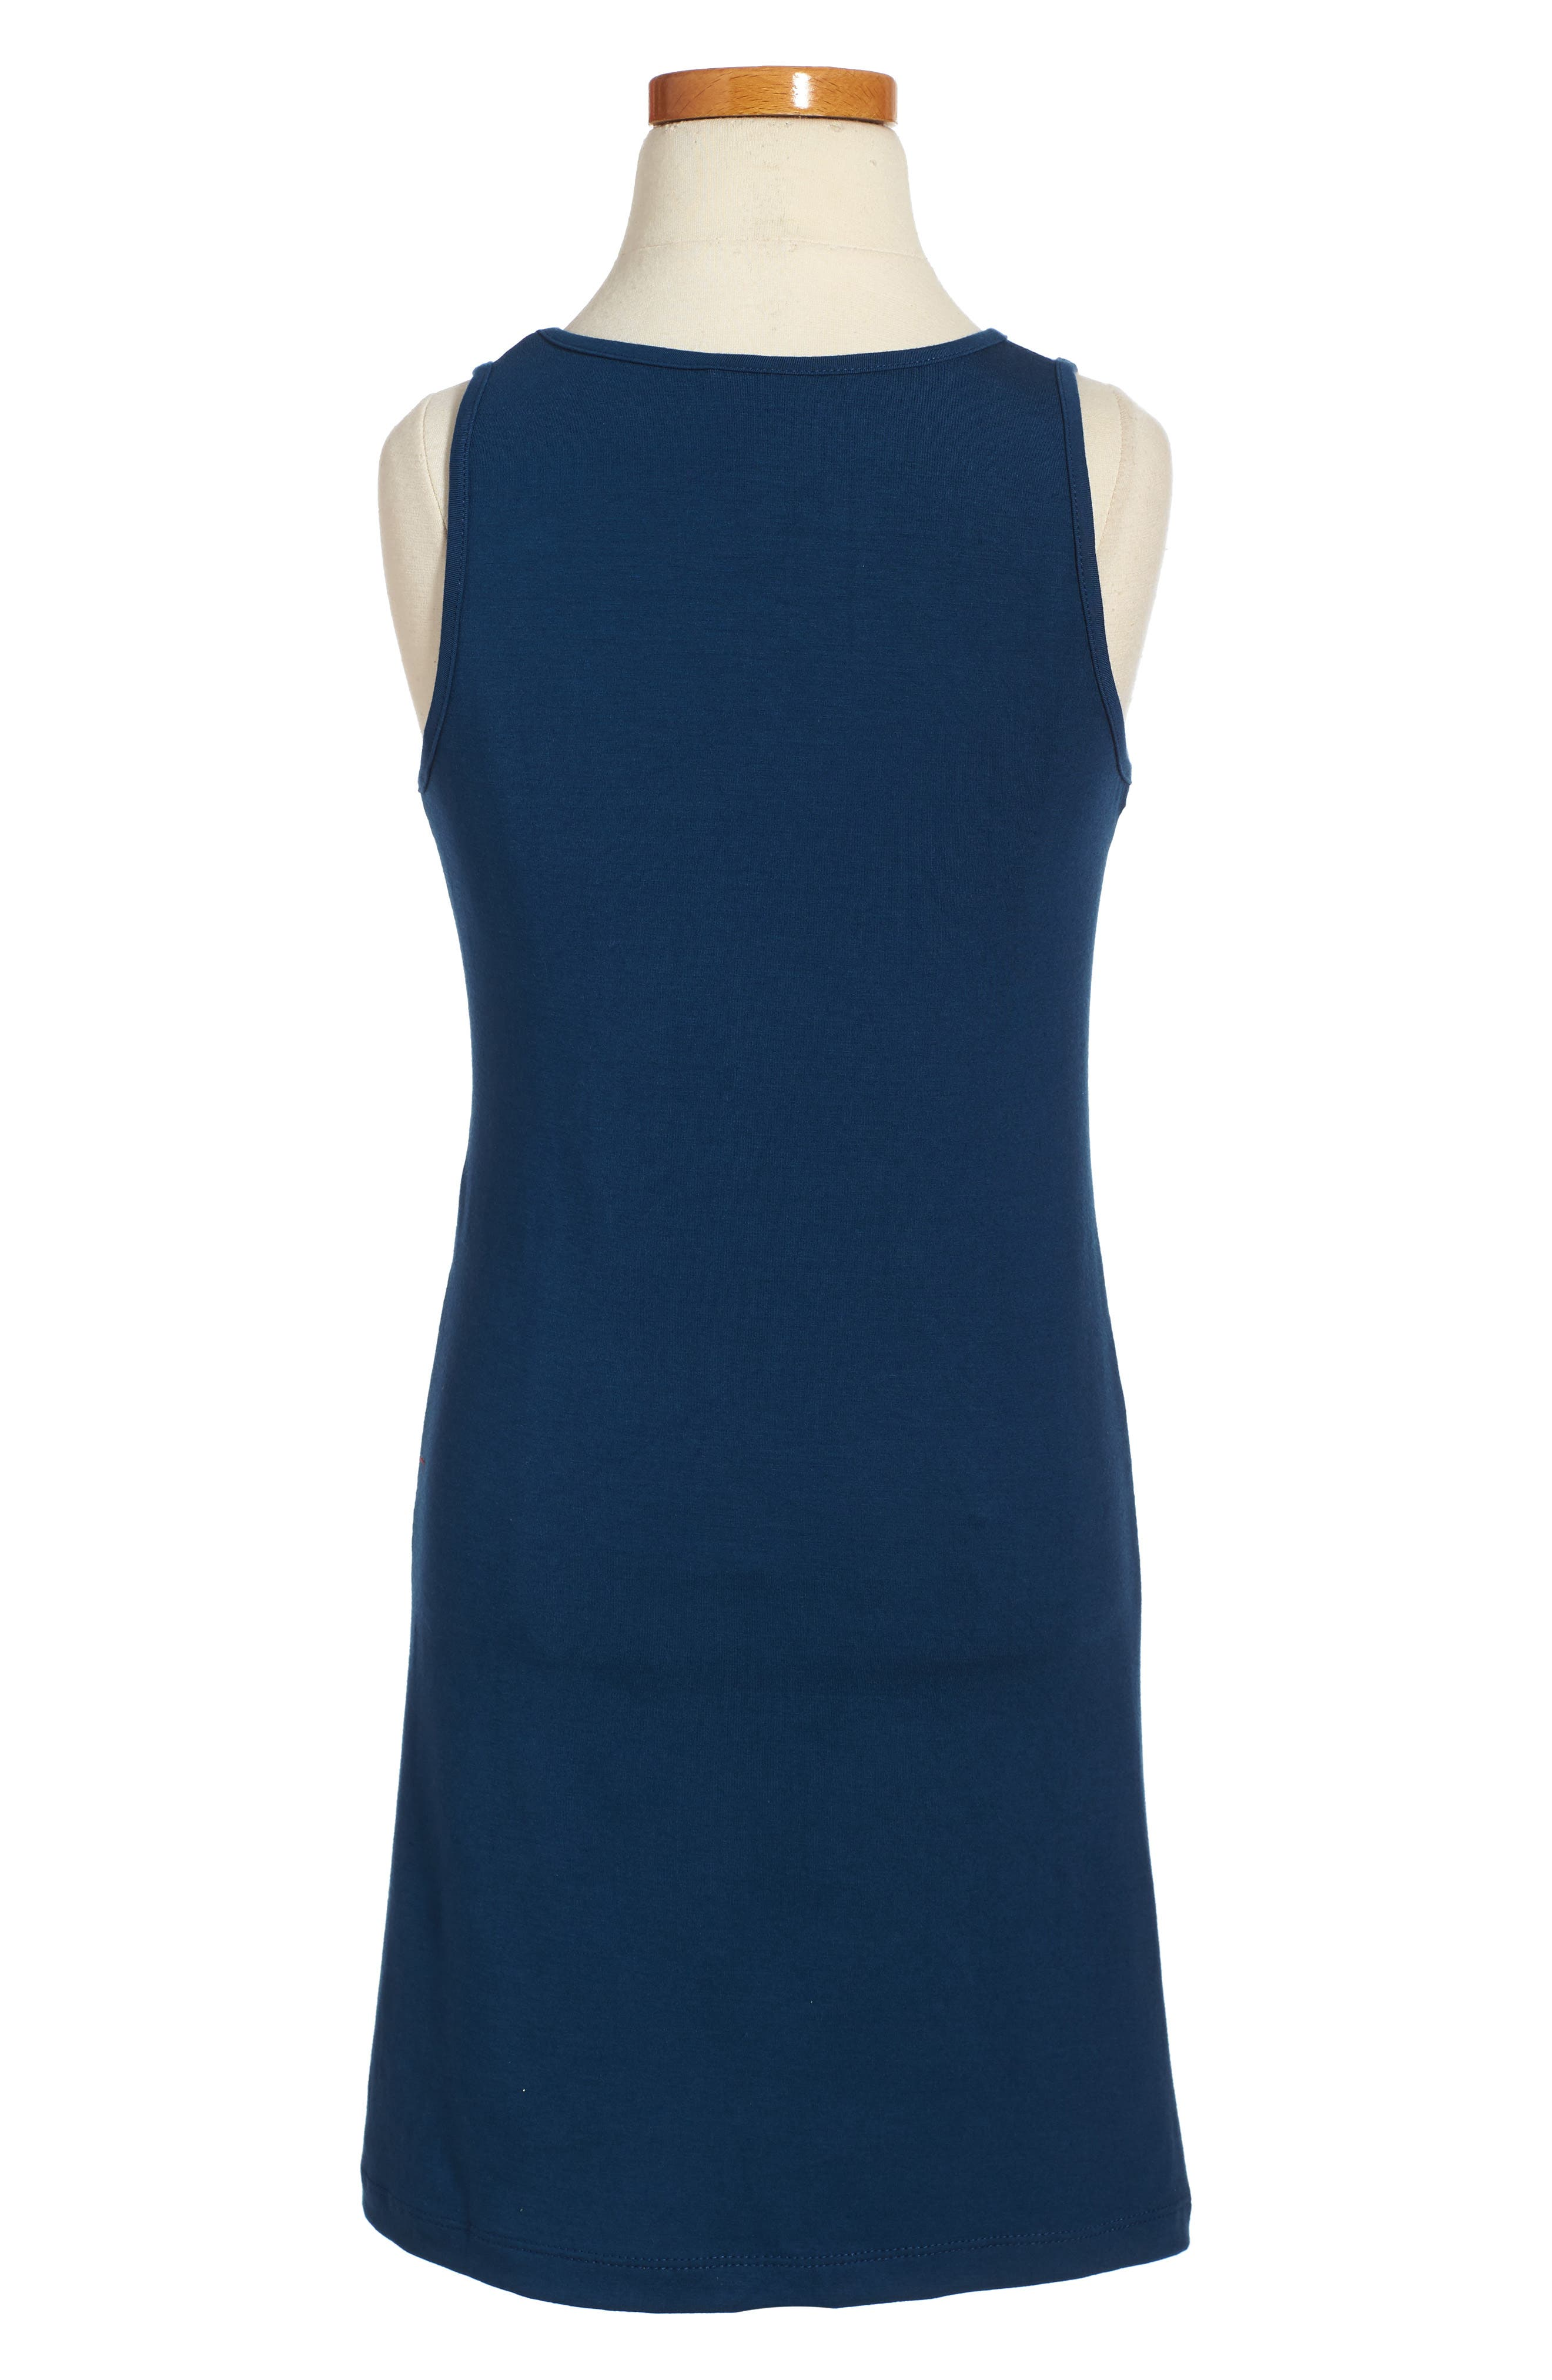 Faux Leather Trim Dress,                             Alternate thumbnail 2, color,                             Navy